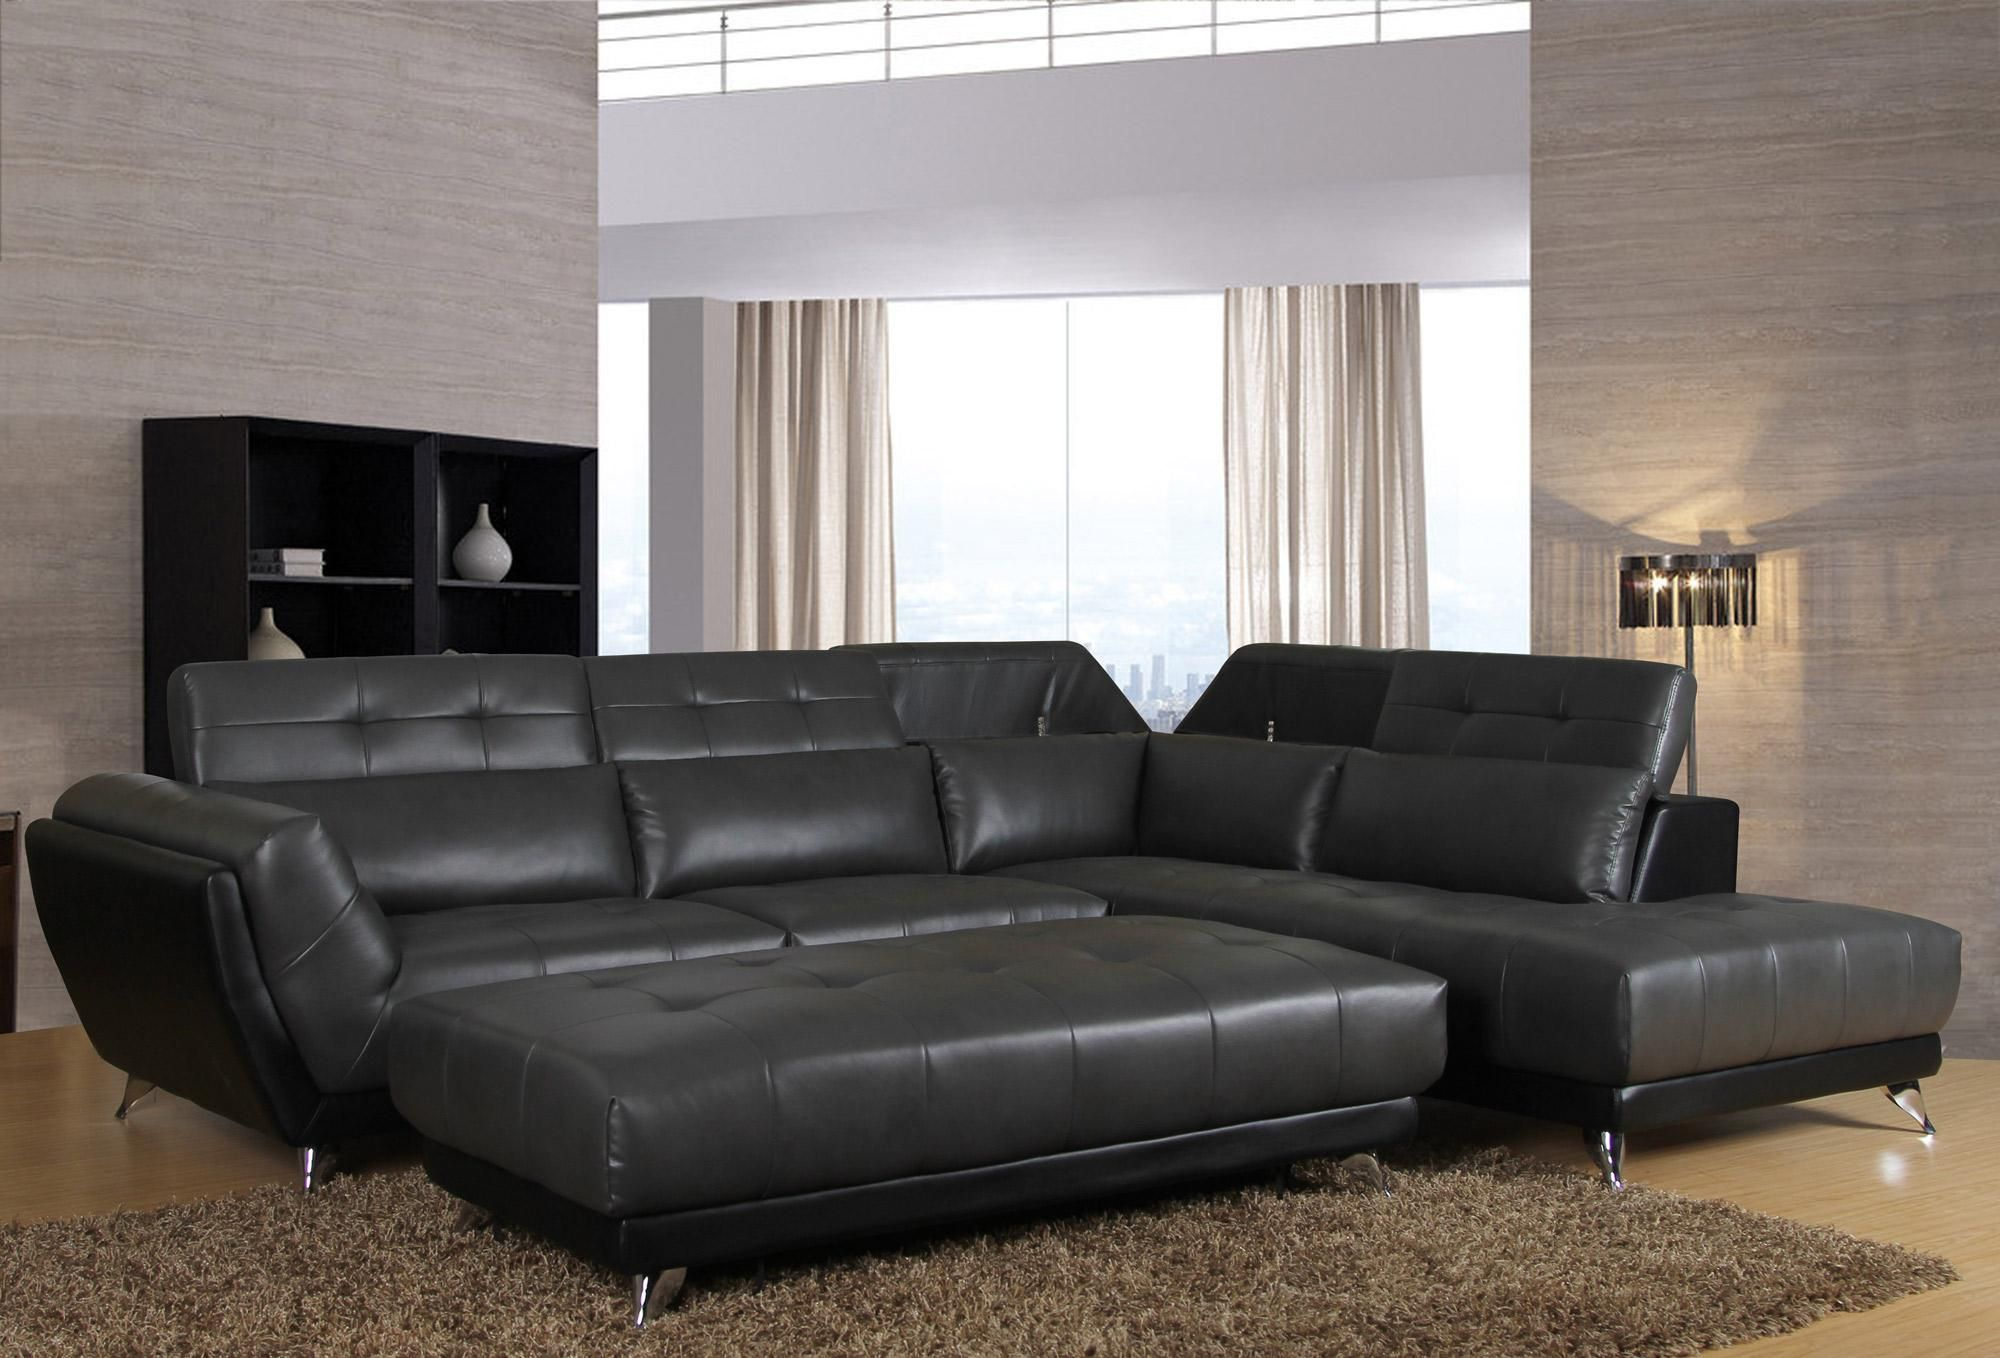 "Mars"" Seal & Black Upholstered 2 Piece Sectional"